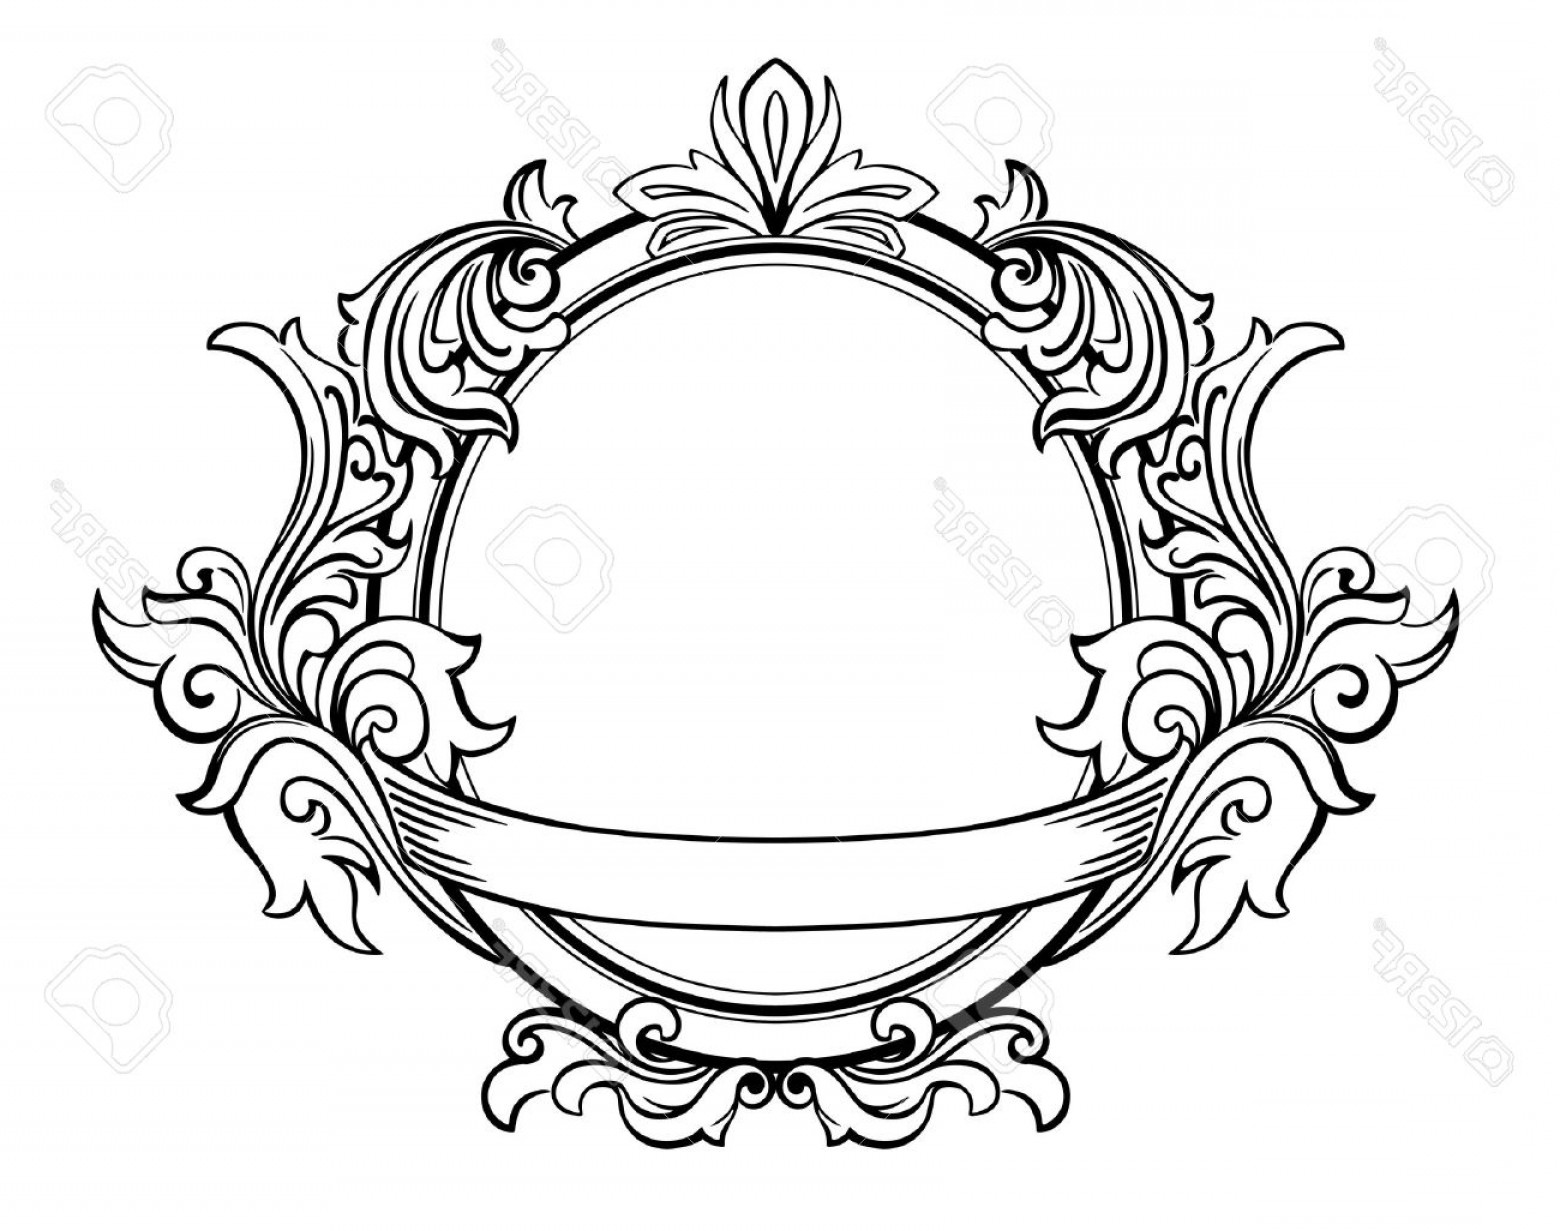 Victorian Style Frame Vector: Photoretro Frame With Decorative Floral Elements In Victorian Style